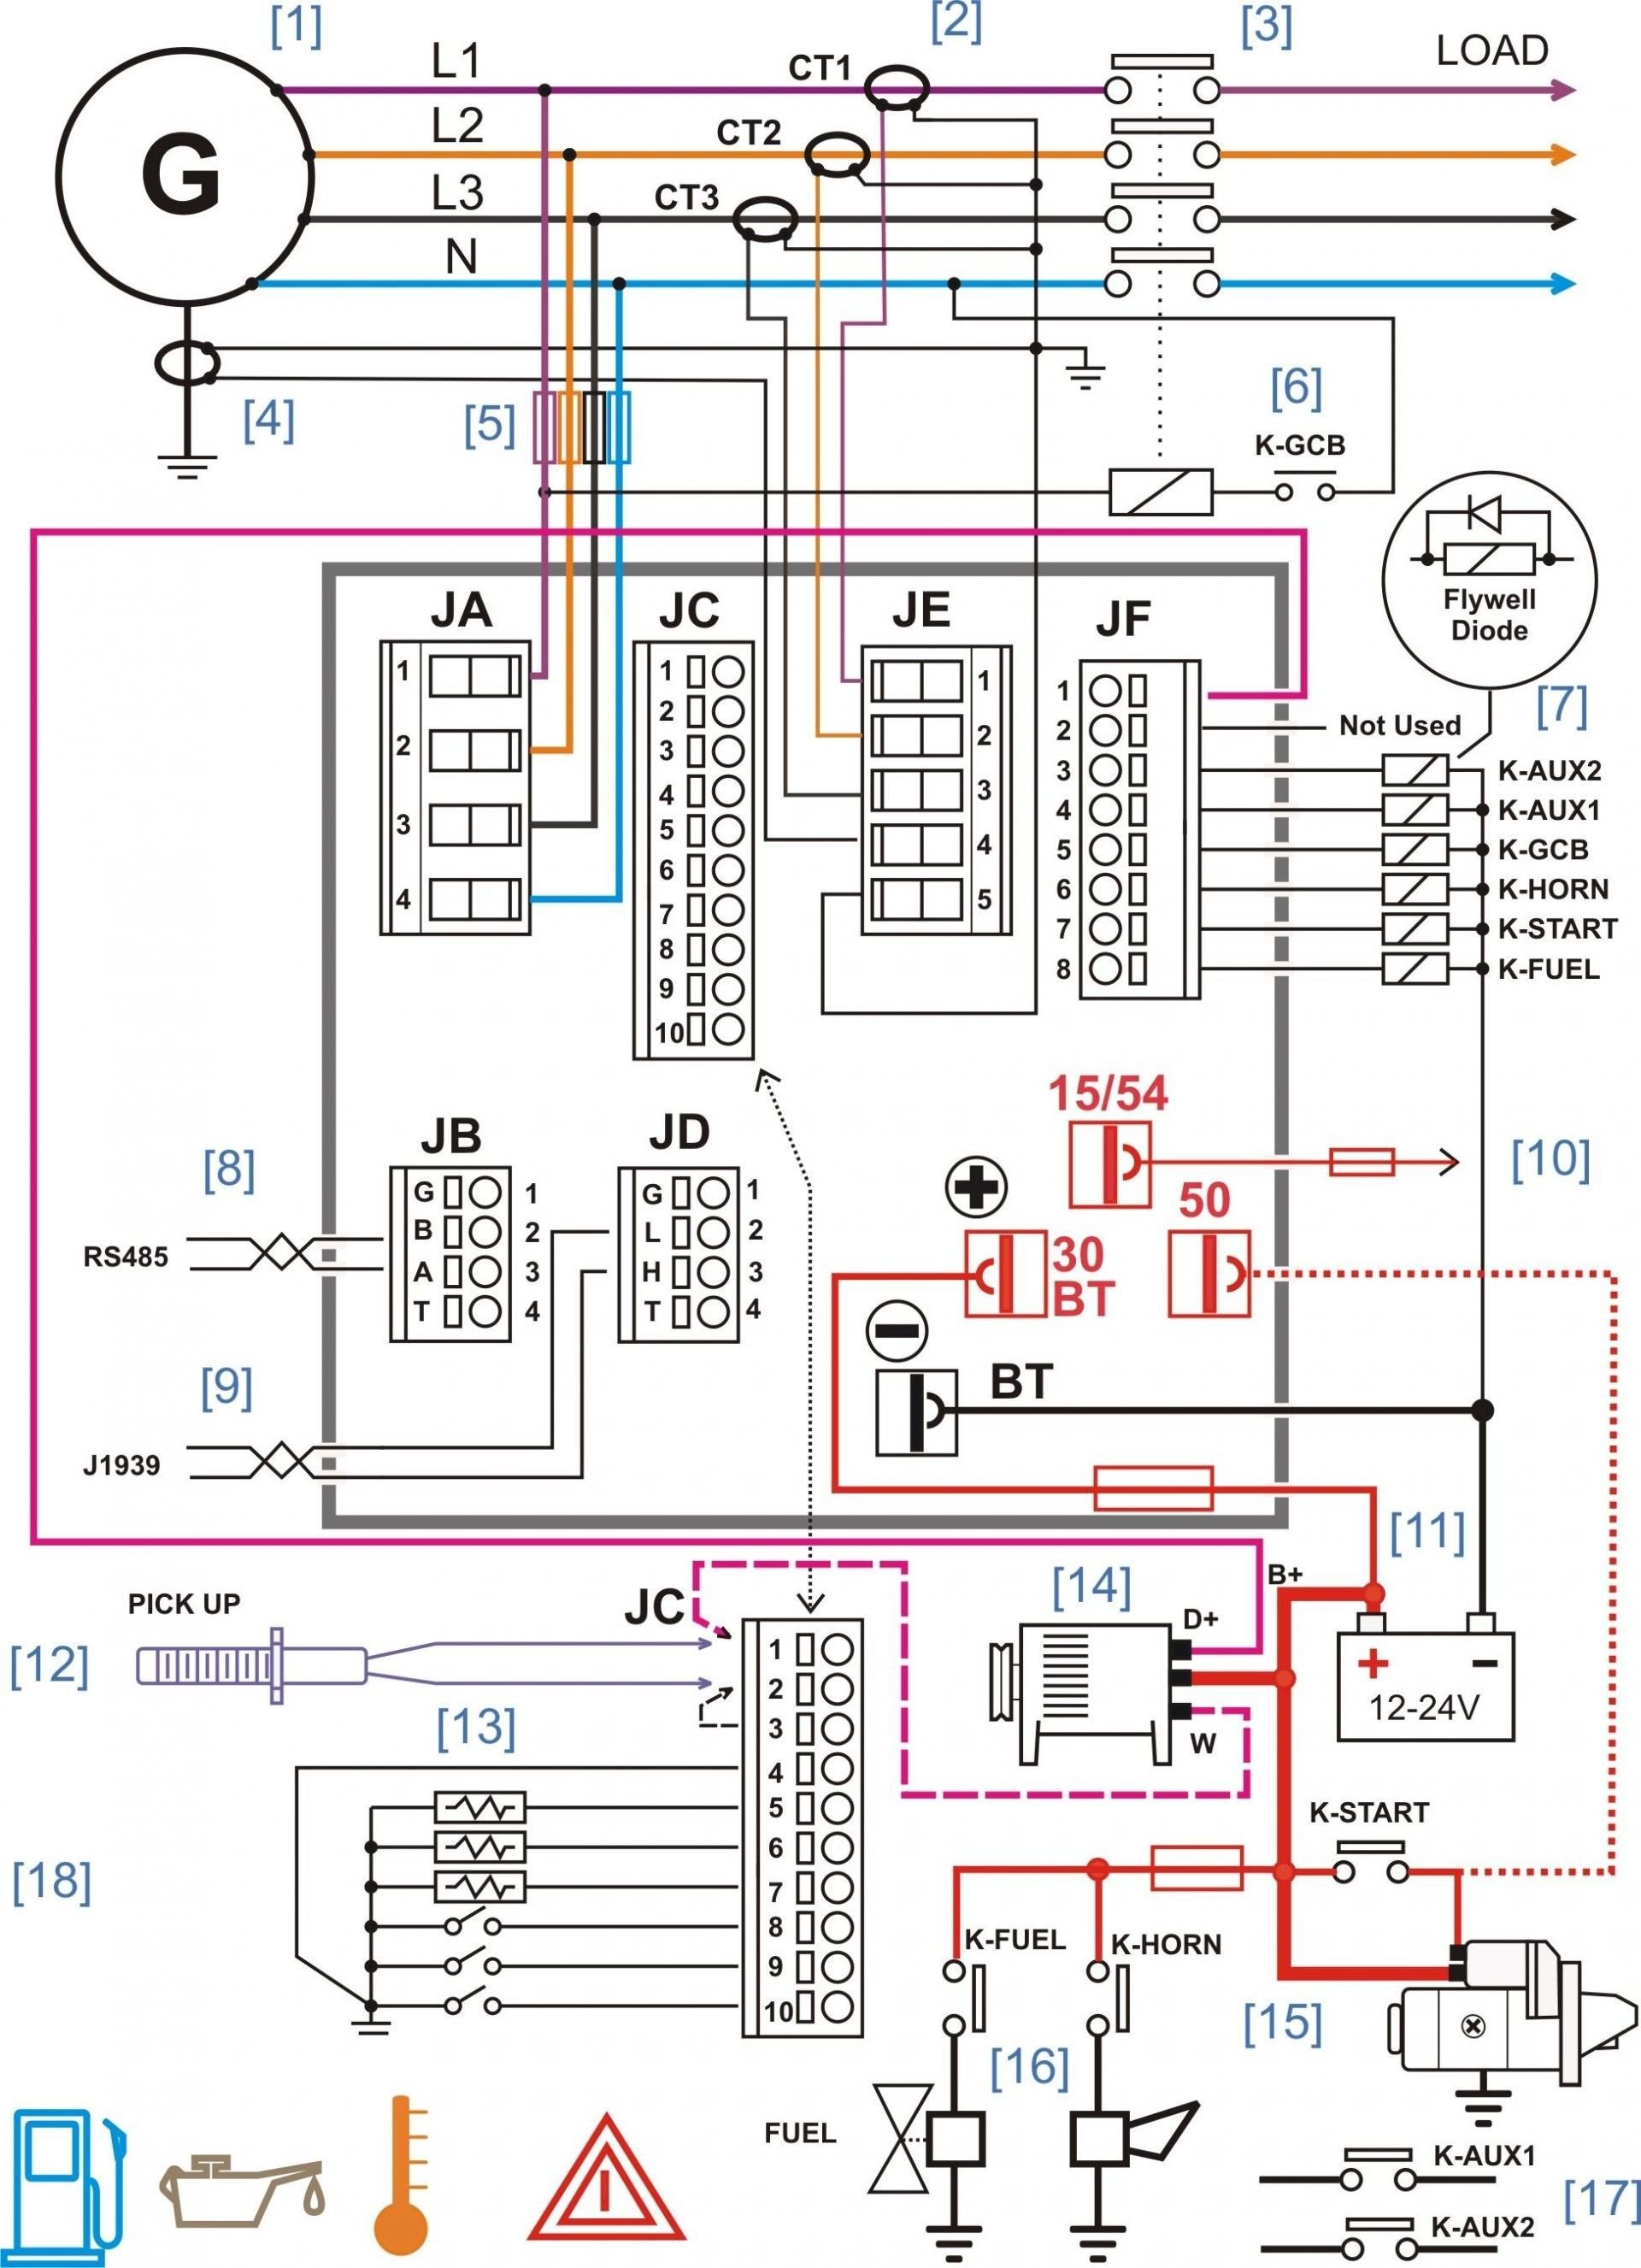 45 Awesome Fitech Fan Wiring Diagram Electrical Circuit Diagram Electrical Wiring Diagram Electrical Diagram